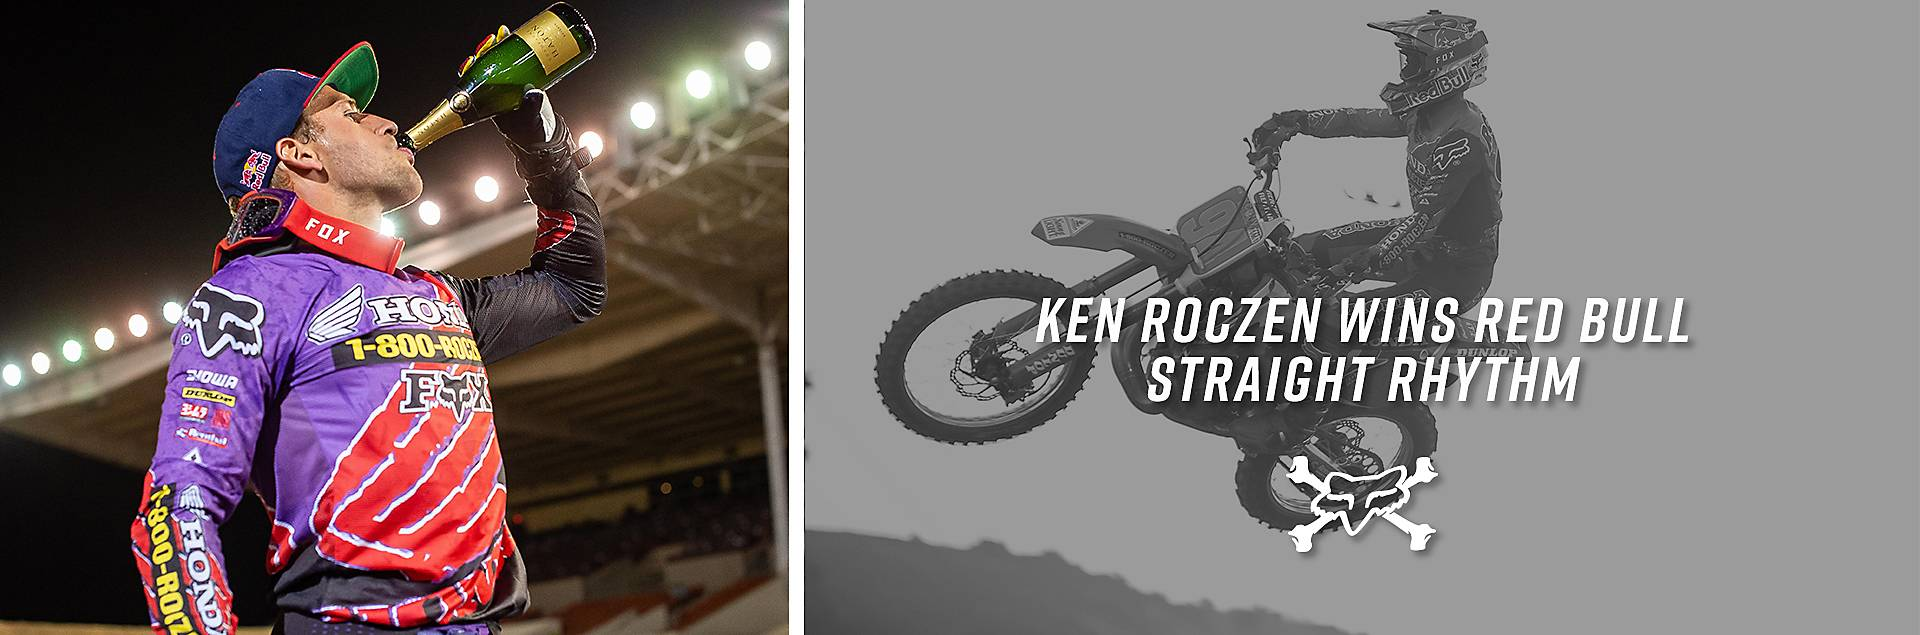 Ken Roczen Wins Red Bull Straight Rhythm